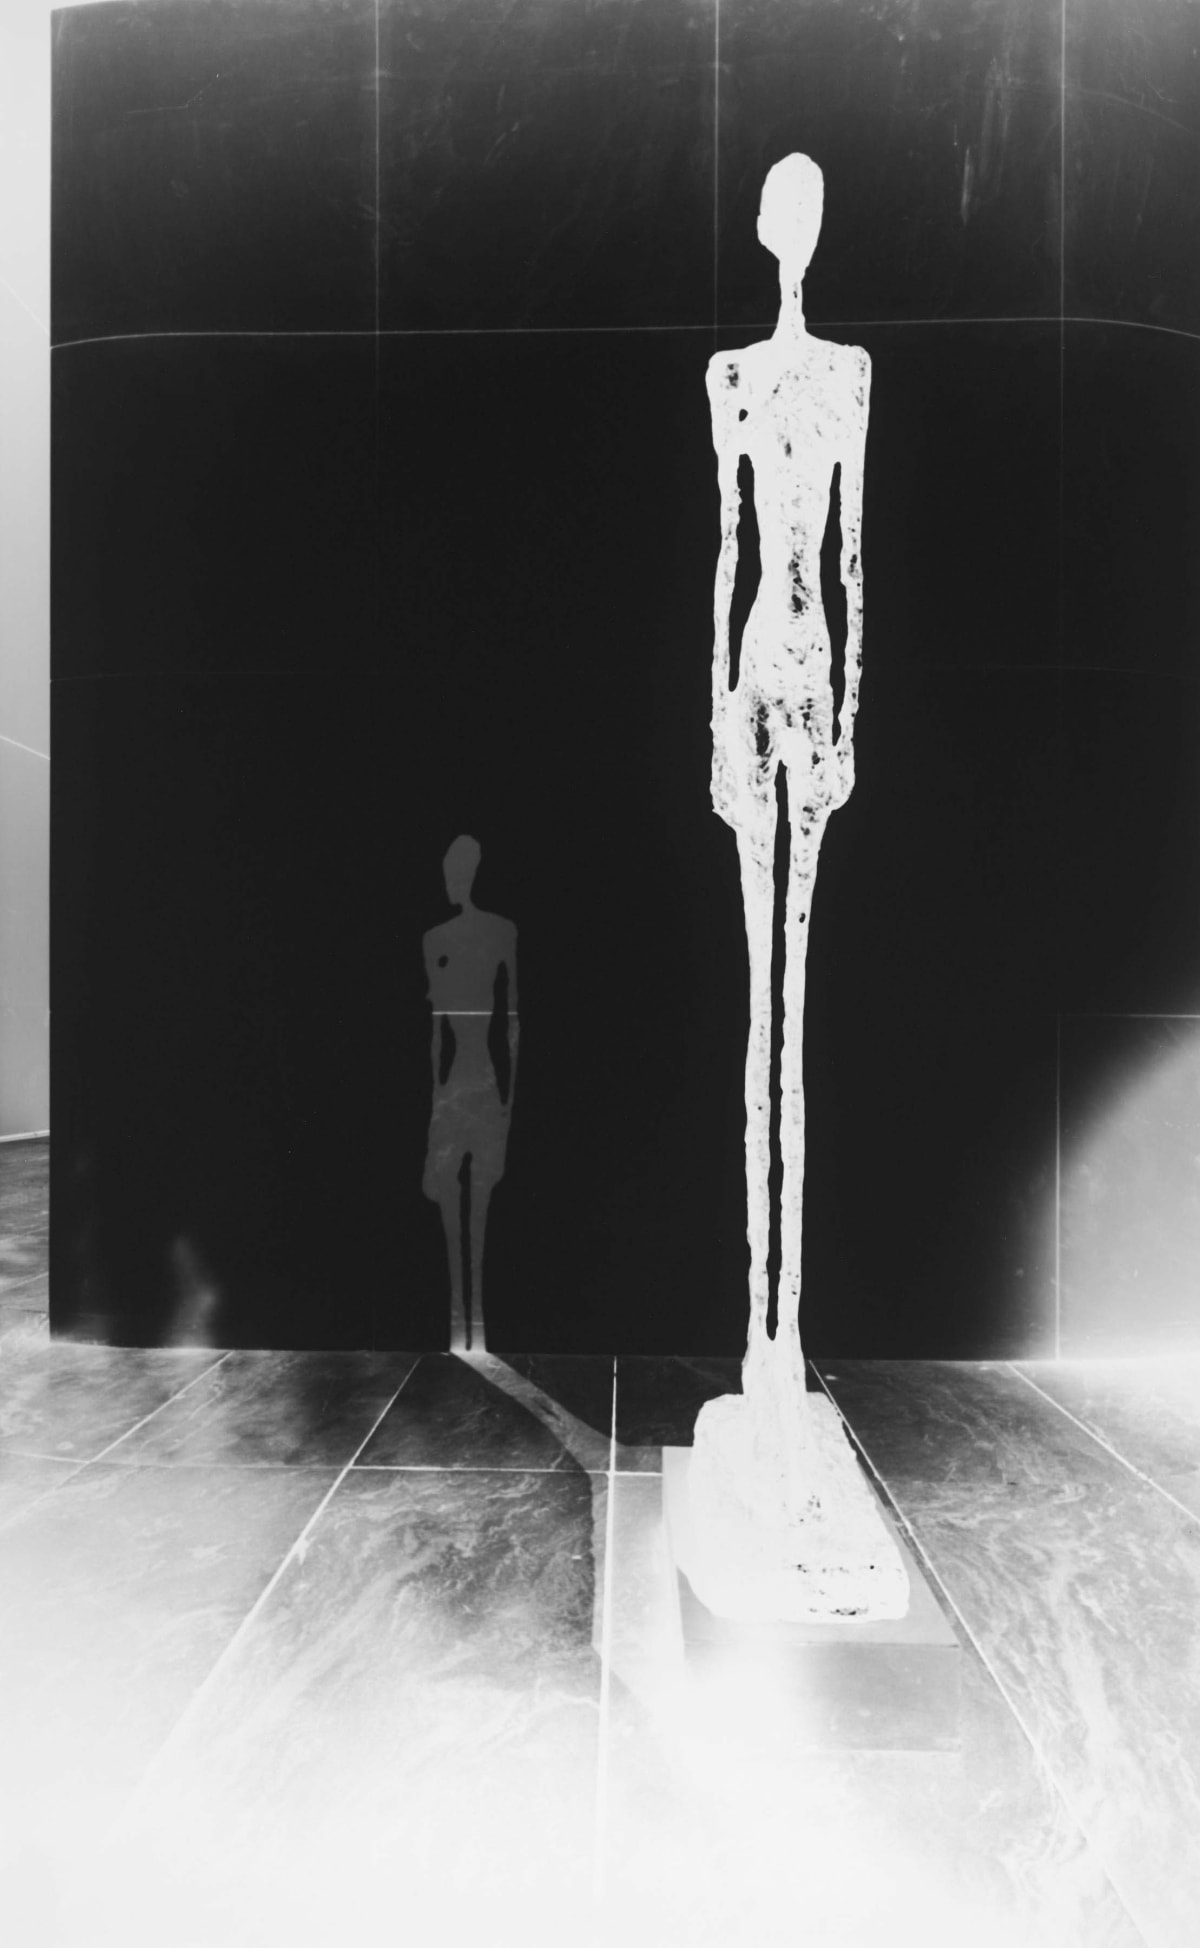 camera obscura image of Giacometti's sculpture of a Tall Figure